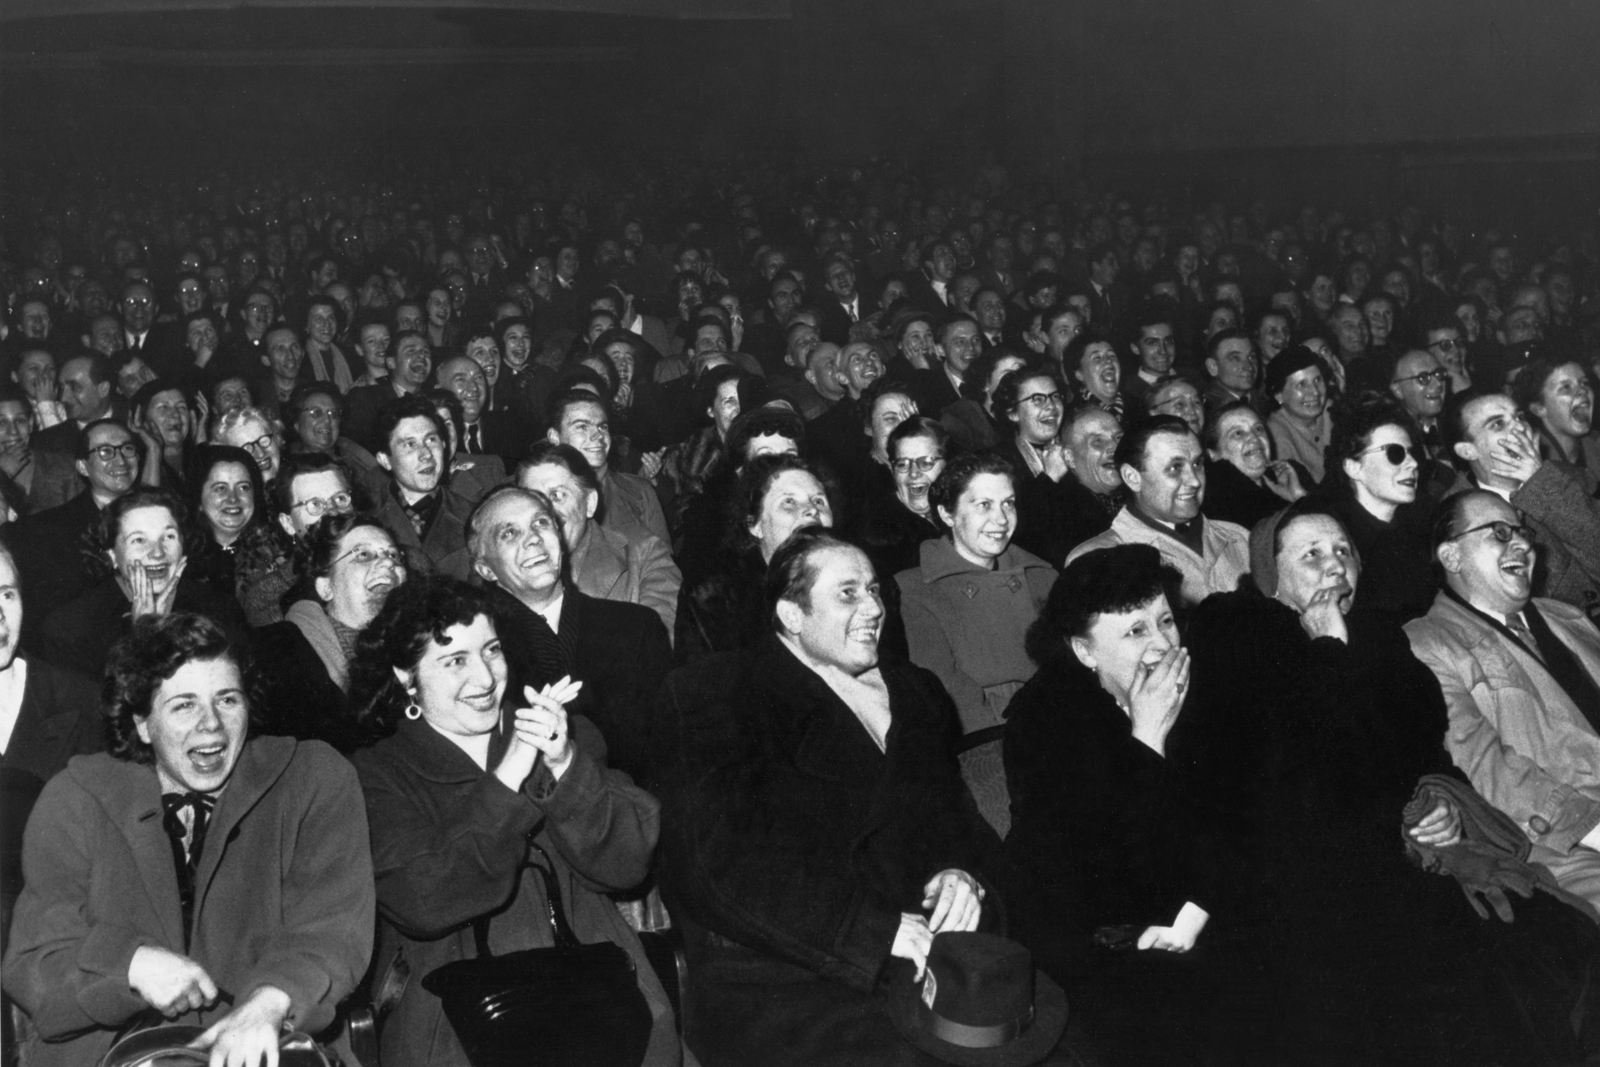 Black and white photo of cinema audience looking at the screen